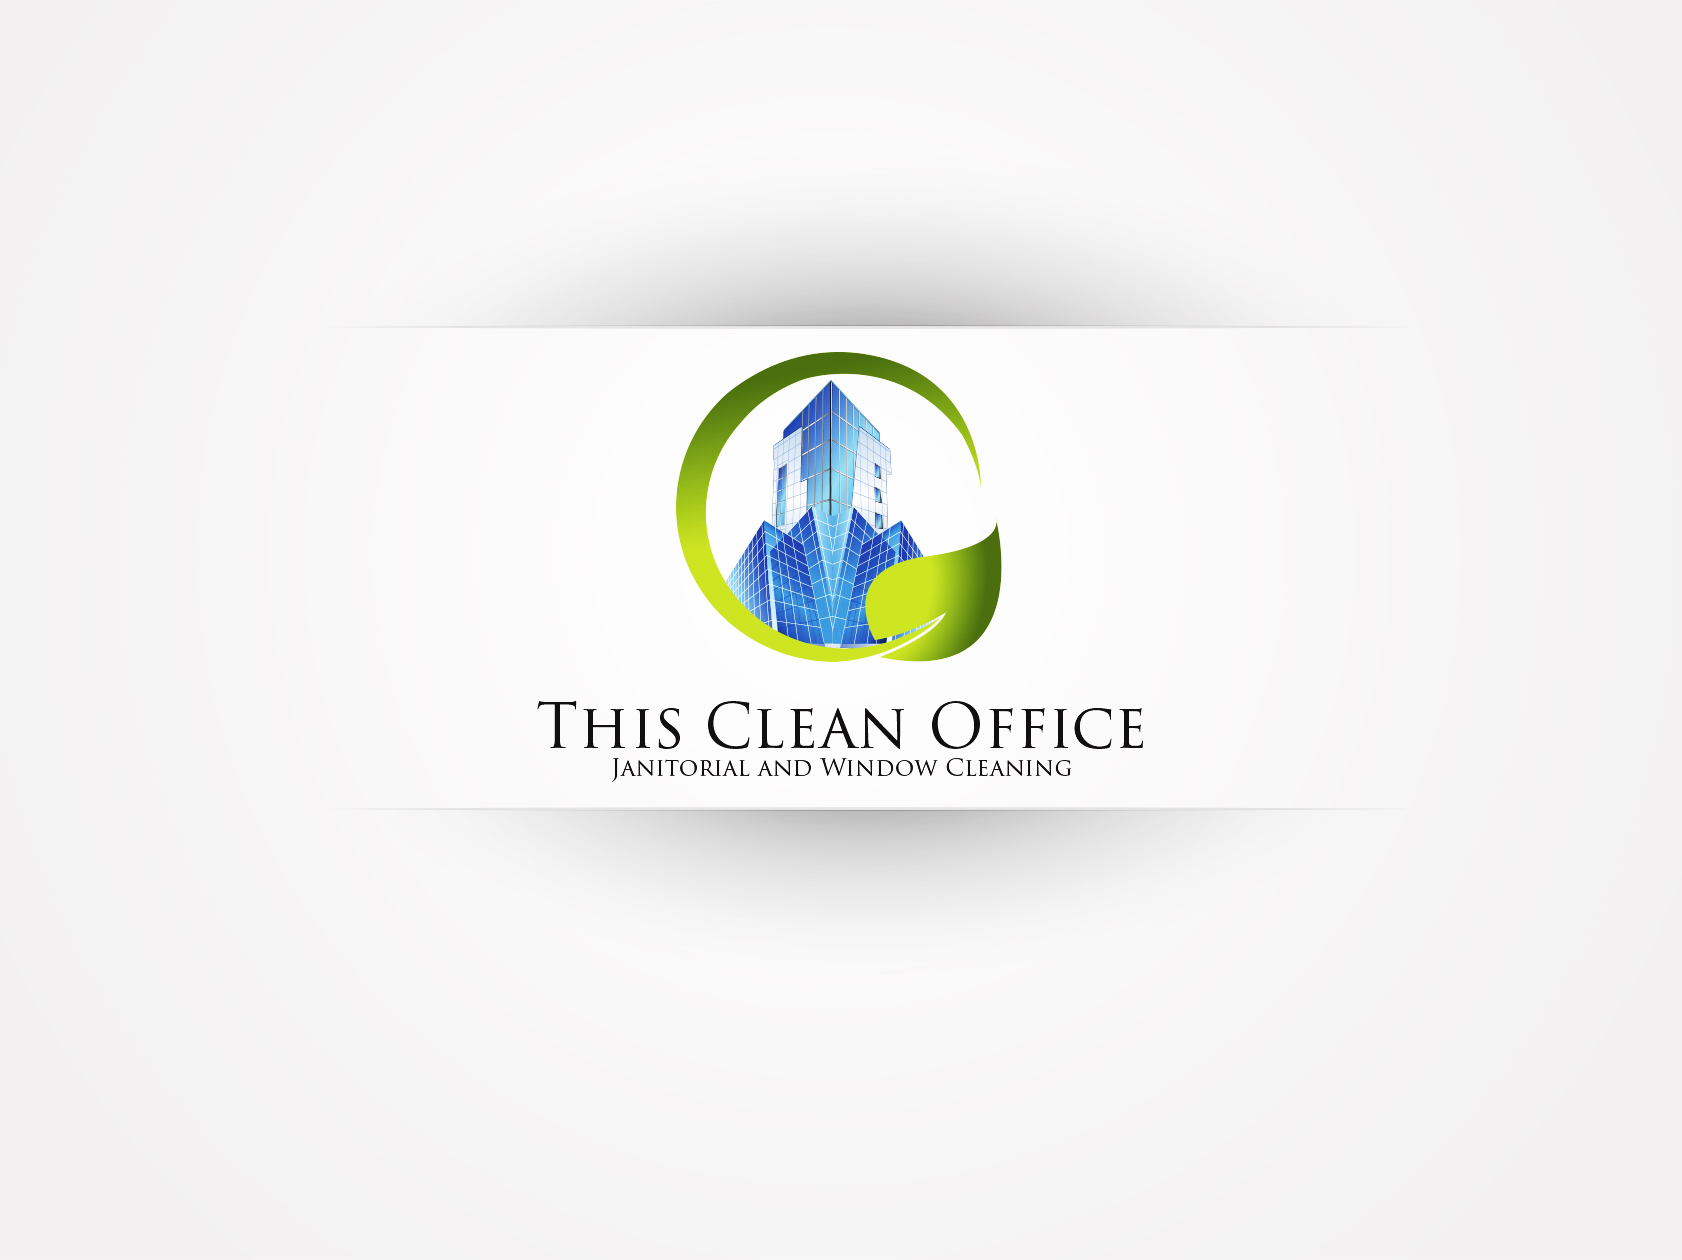 Logo Design by OmegaDesigns - Entry No. 32 in the Logo Design Contest Professional and Unforgettable Logo Design for This Clean Office.